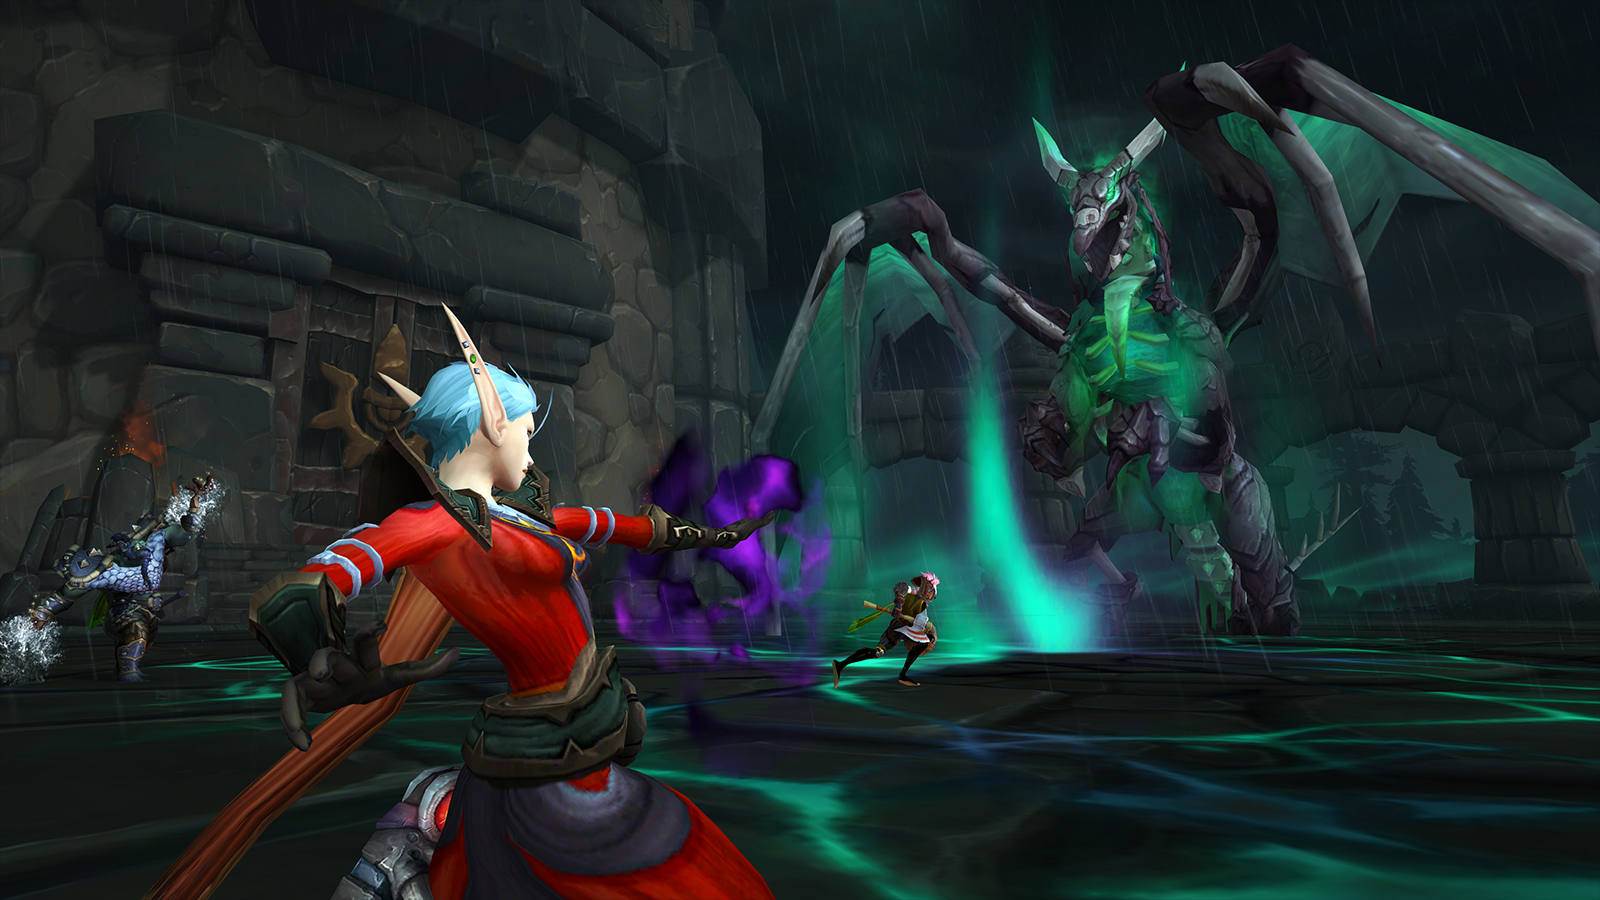 Exile's Reach photo showing a boss battle between a group of players